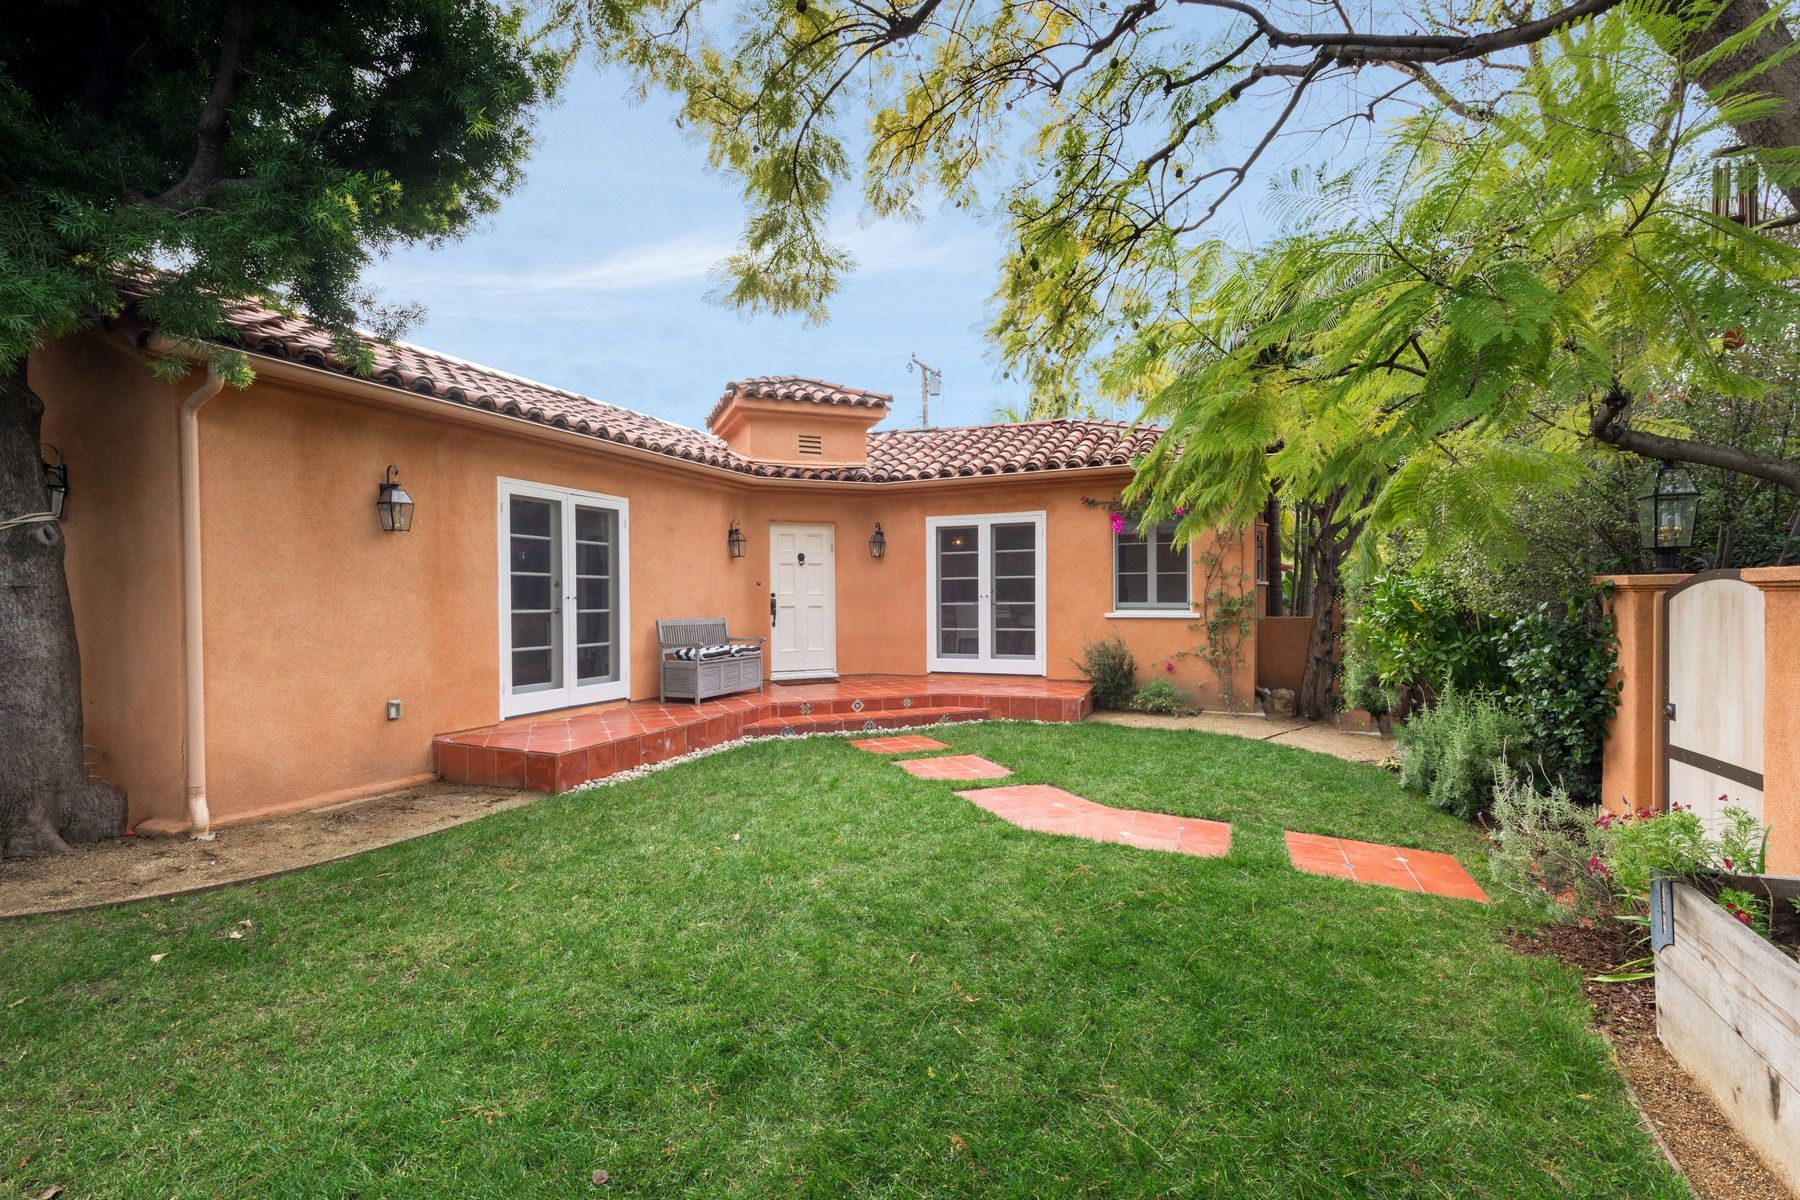 Single Family Homes for Sale at 465 Westmount Drive West Hollywood, California 90048 United States